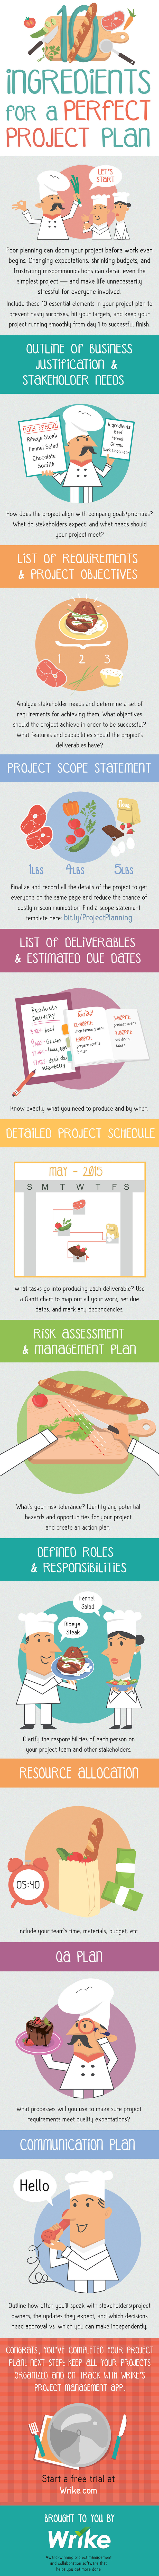 10 Essential Elements for the Perfect Project Plan (Infographic)